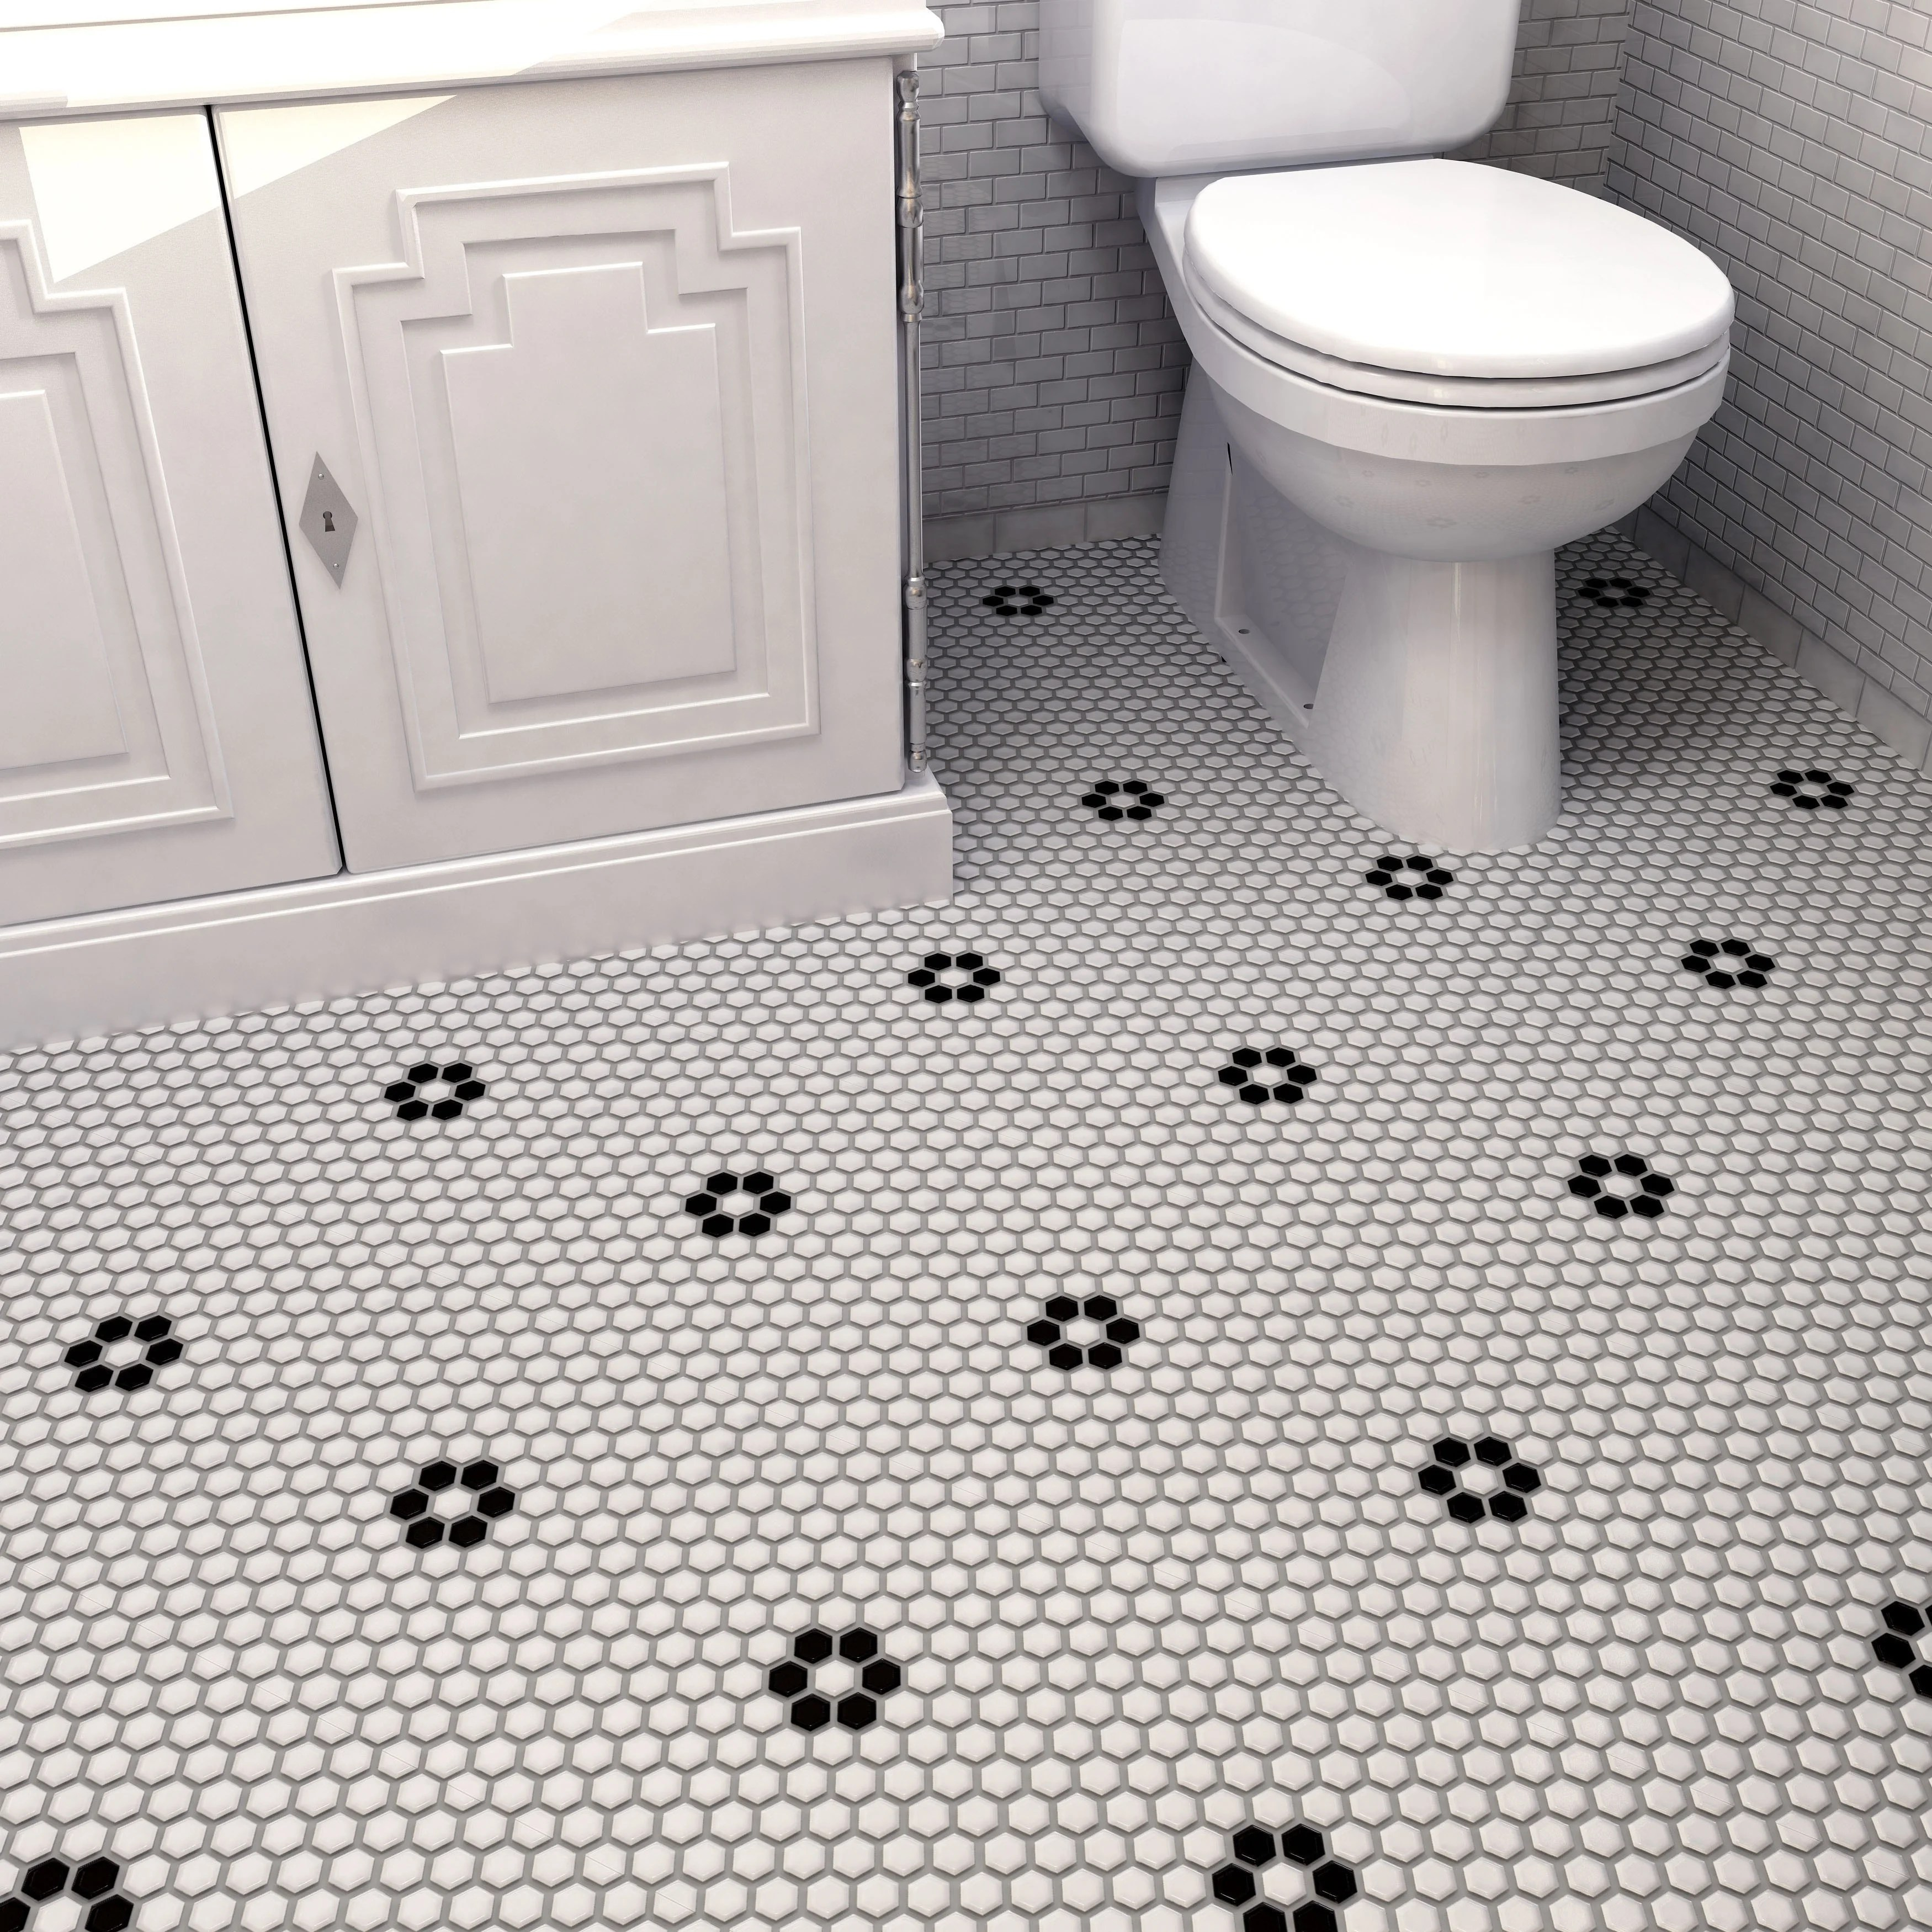 somertile metro hex matte white with single flower 10 25 x11 88 porcelain mosaic floor and wall tile